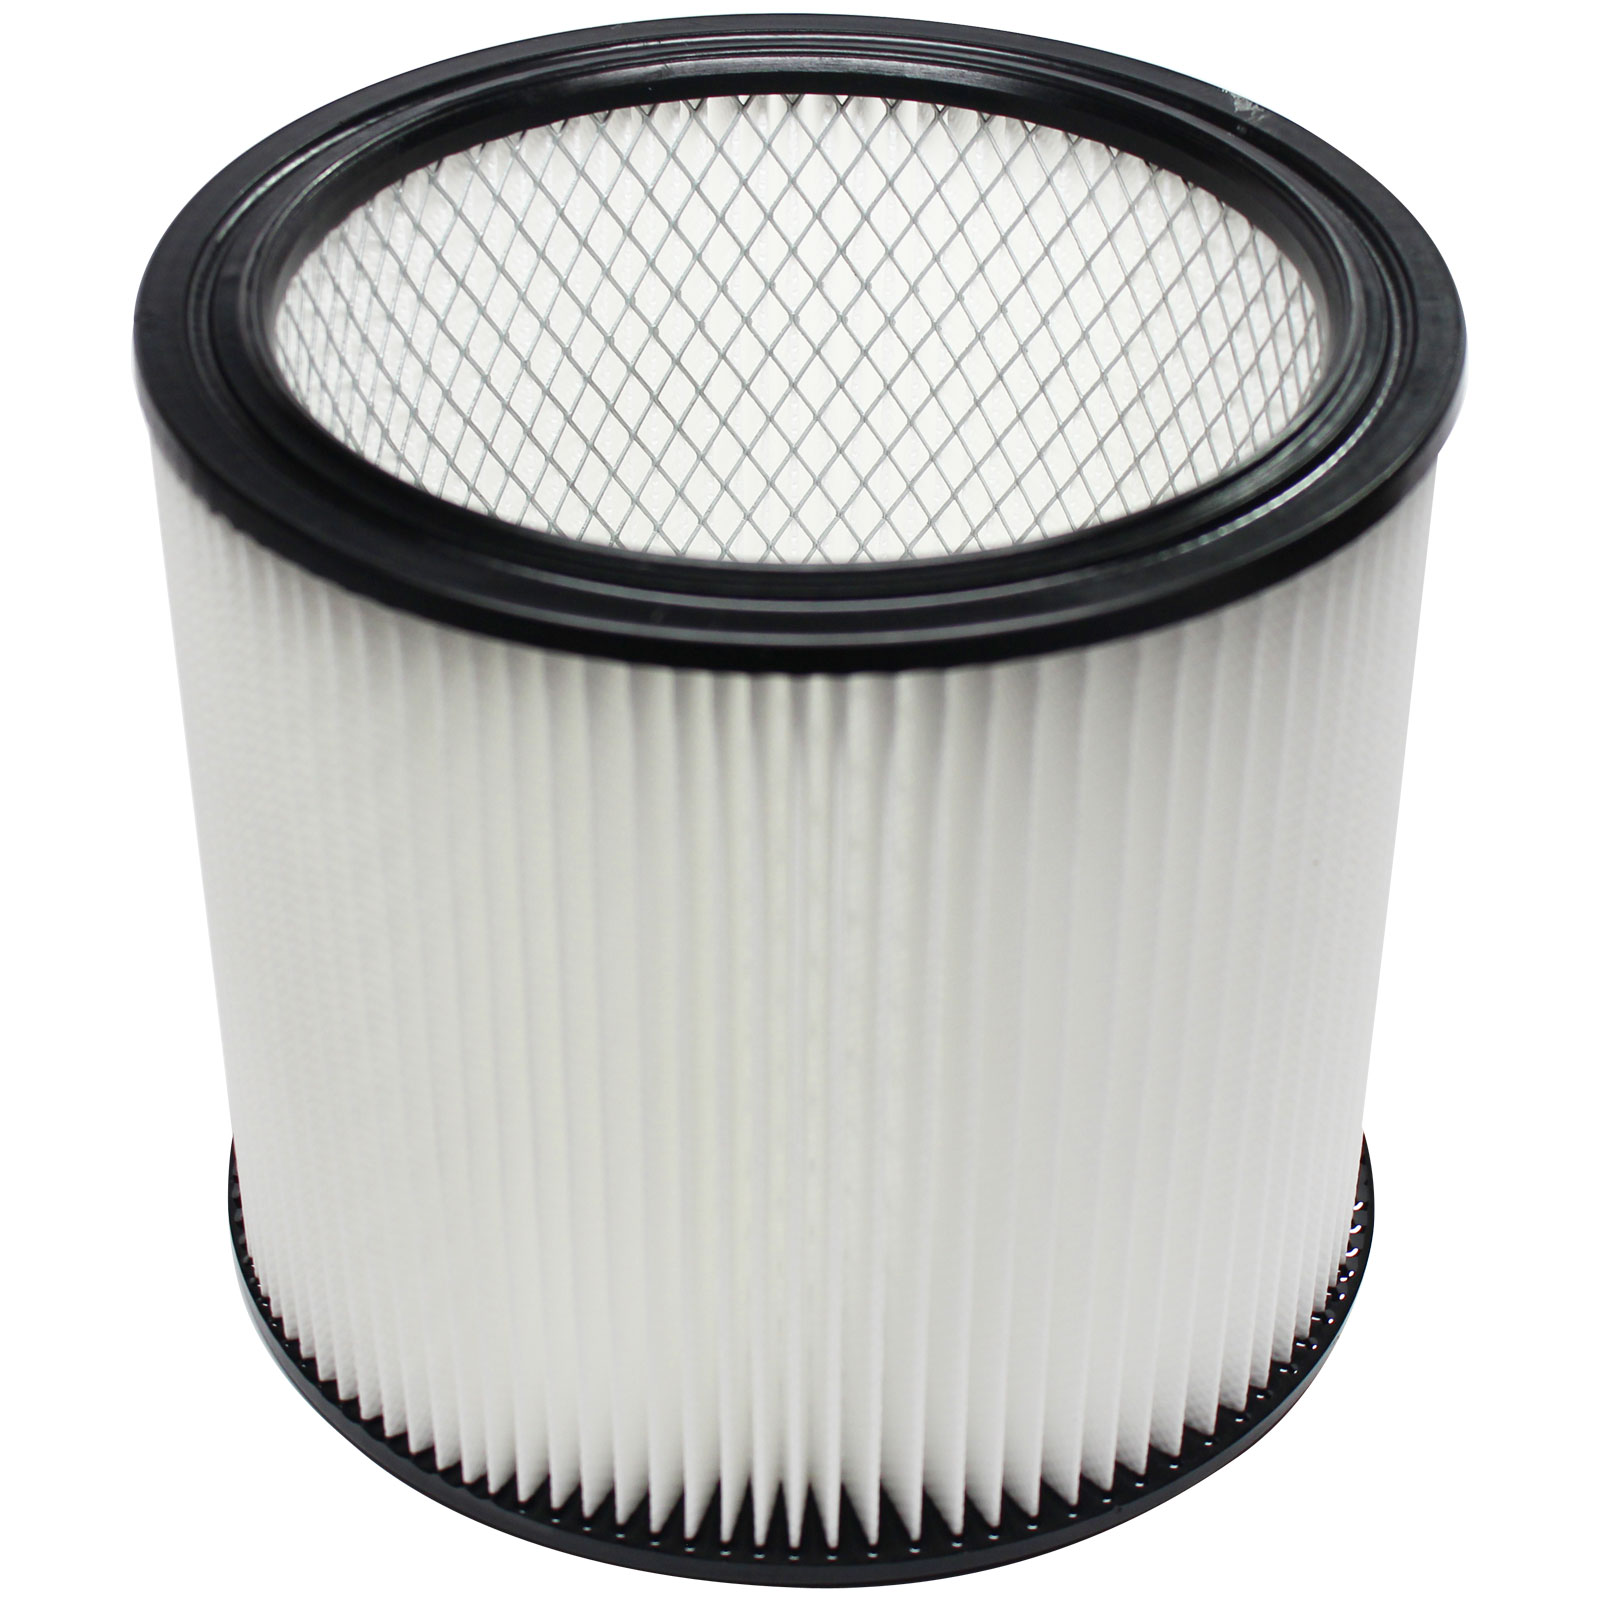 Replacement Shop-Vac BullDog 587-08-00 Vacuum Cartridge Filter - Compatible Shop-Vac 90304 Cartridge Filter - image 1 of 4